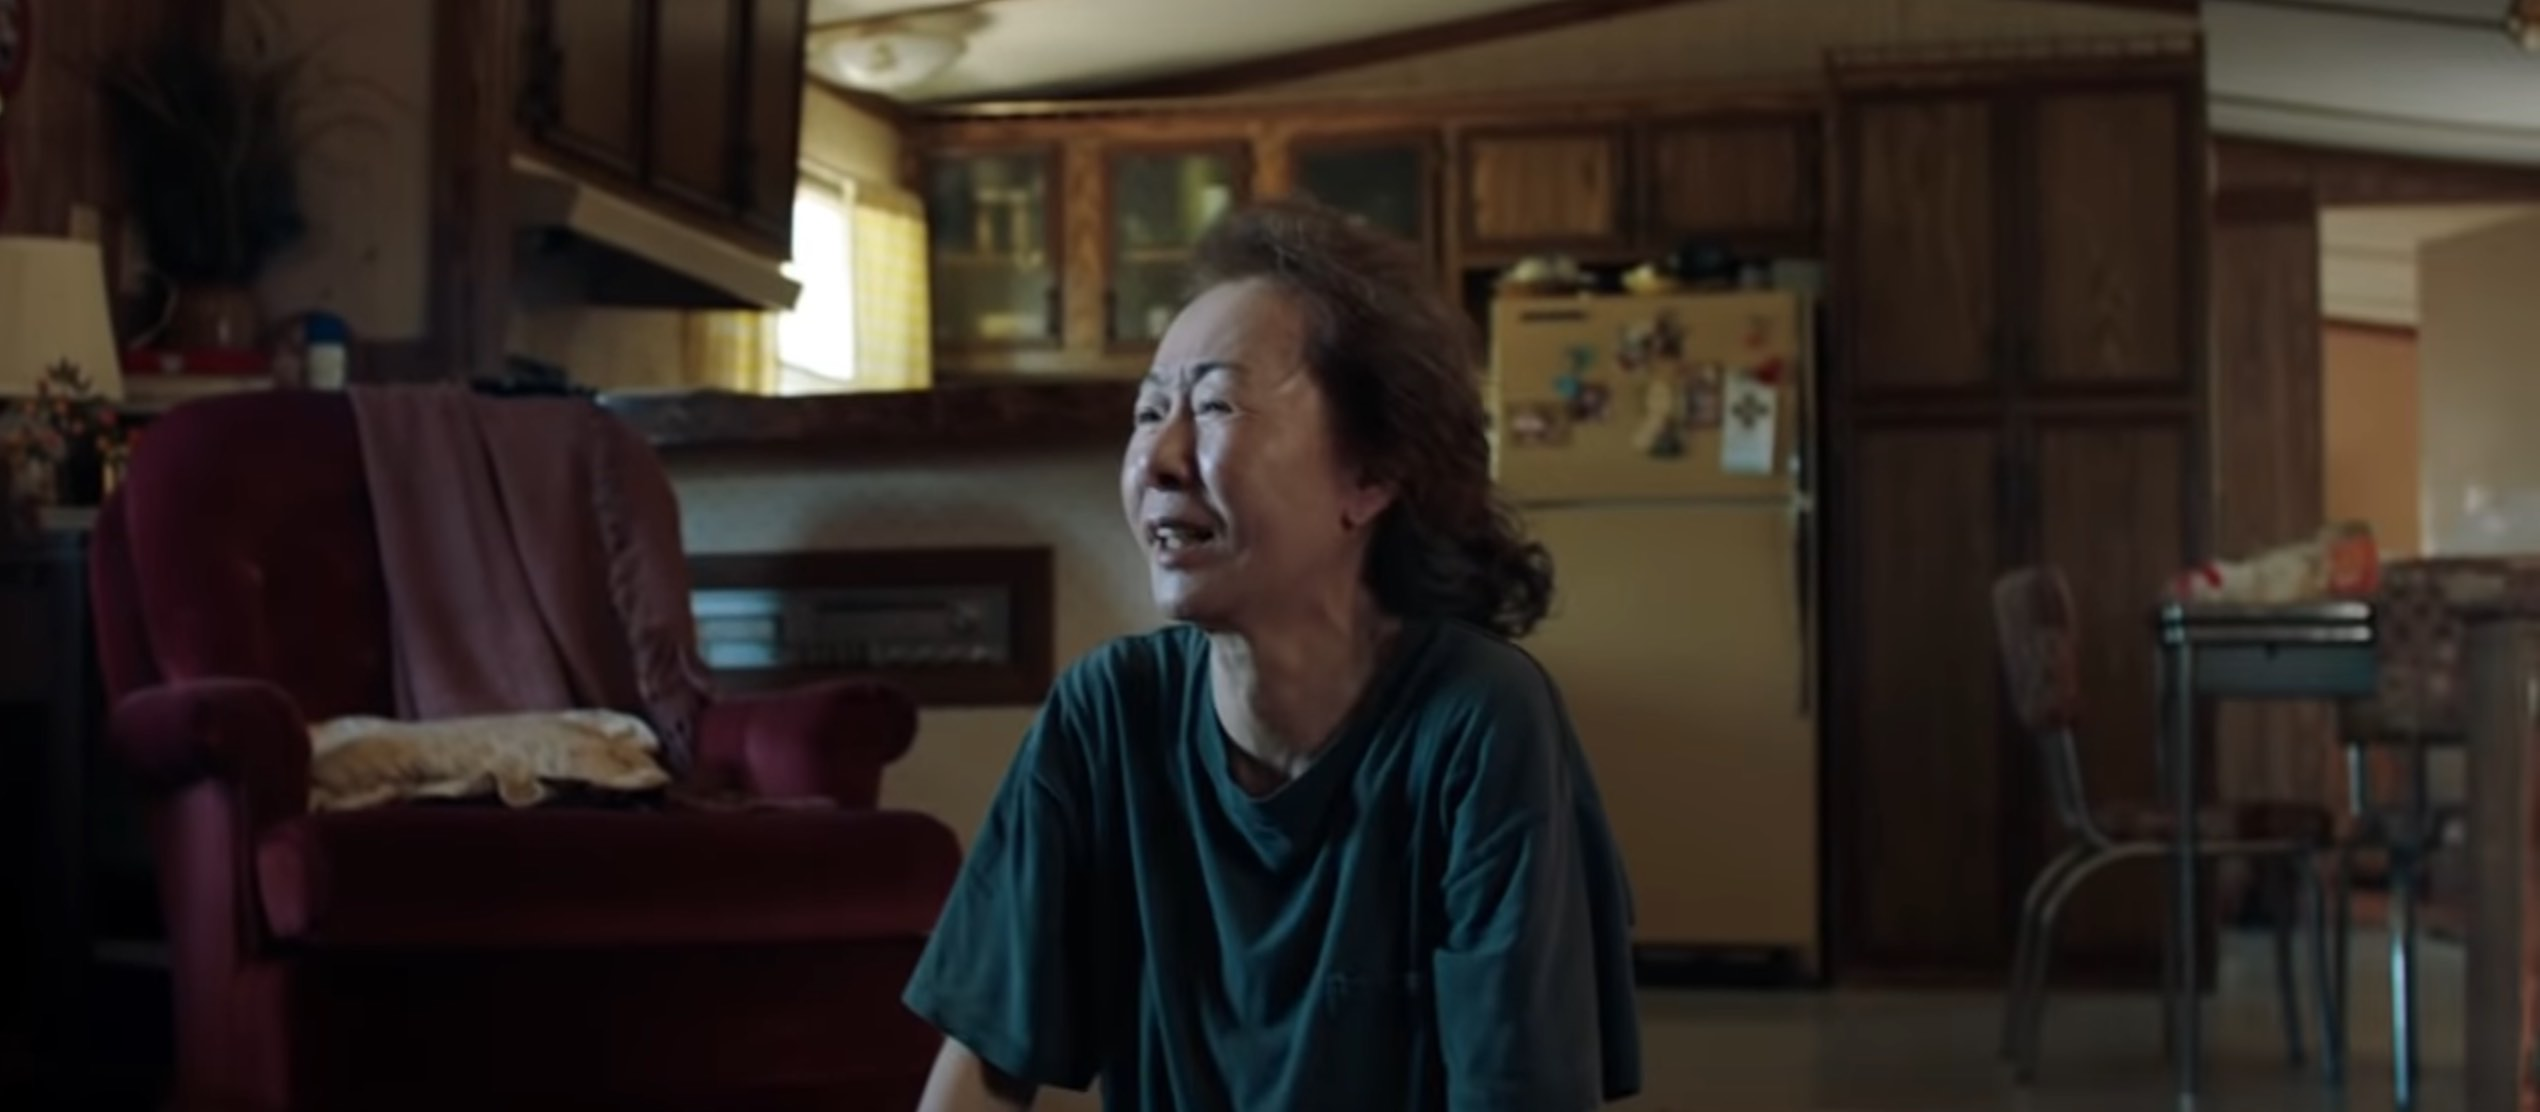 Yuh-jung Youn on Creating the Character Arc of Soonja in Minari -  Awardsdaily - The Oscars, the Films and everything in between.